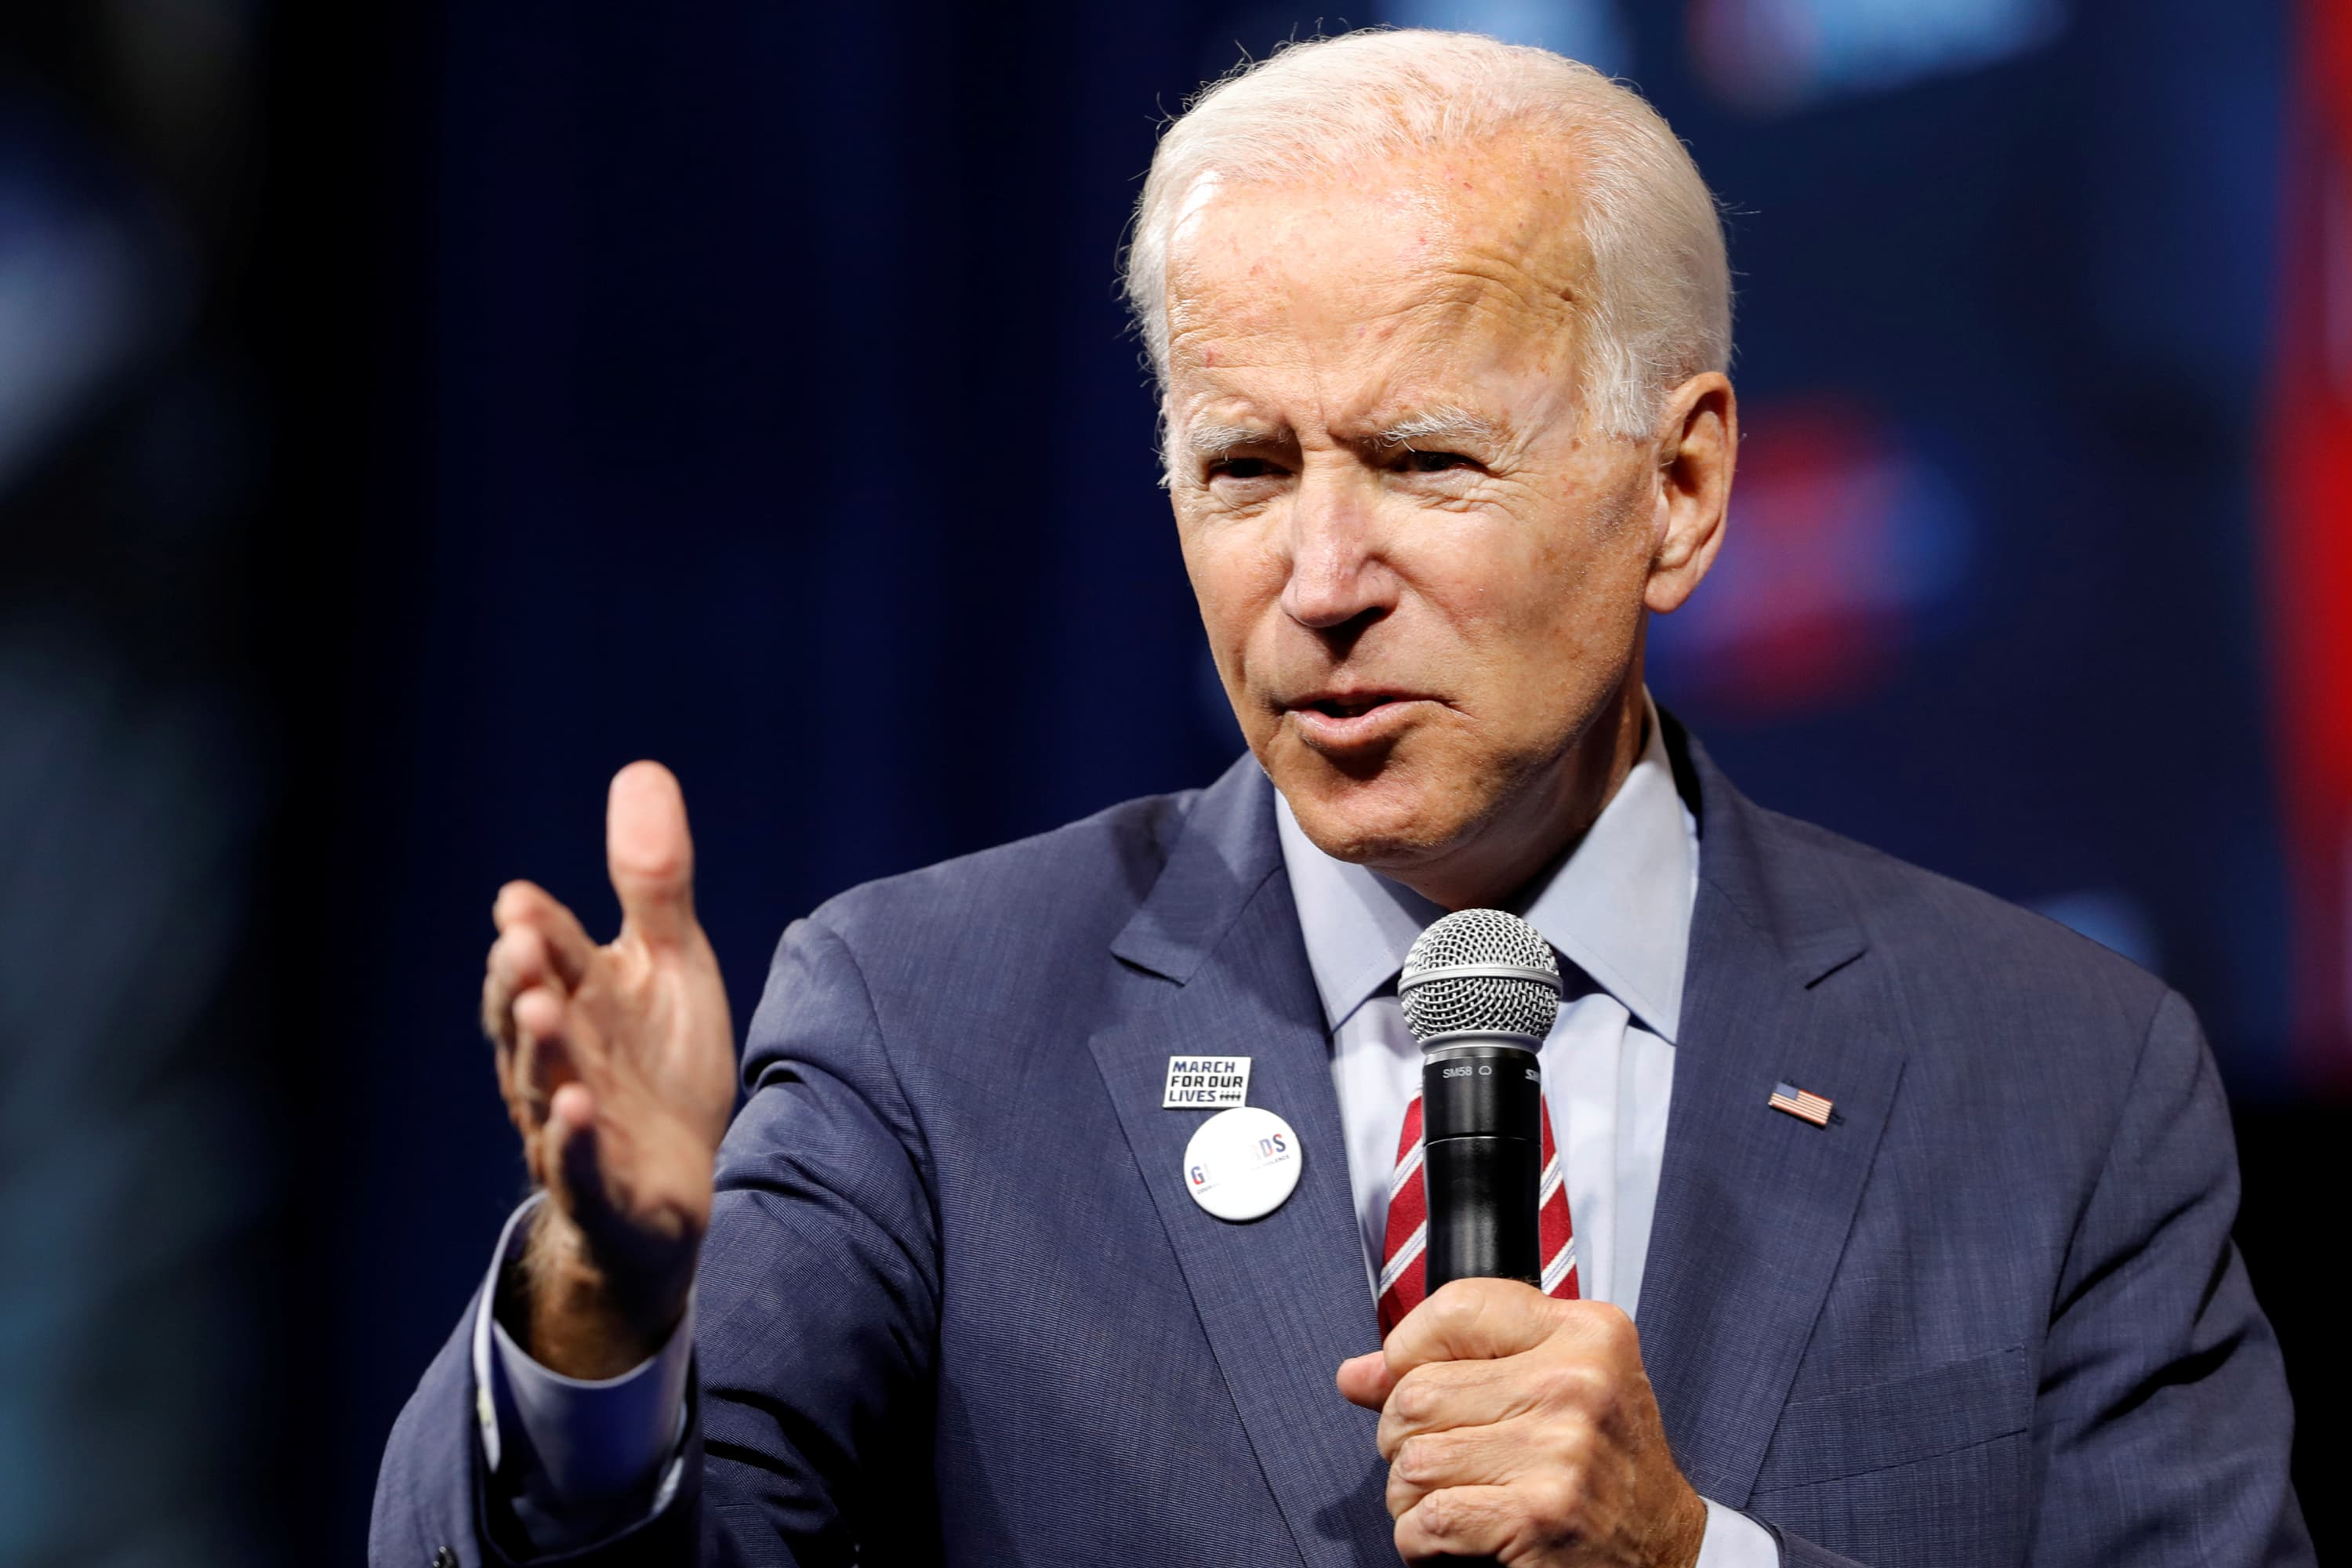 Biden campaign rallies its donors for big Super Tuesday push as poll numbers and fundraising soften